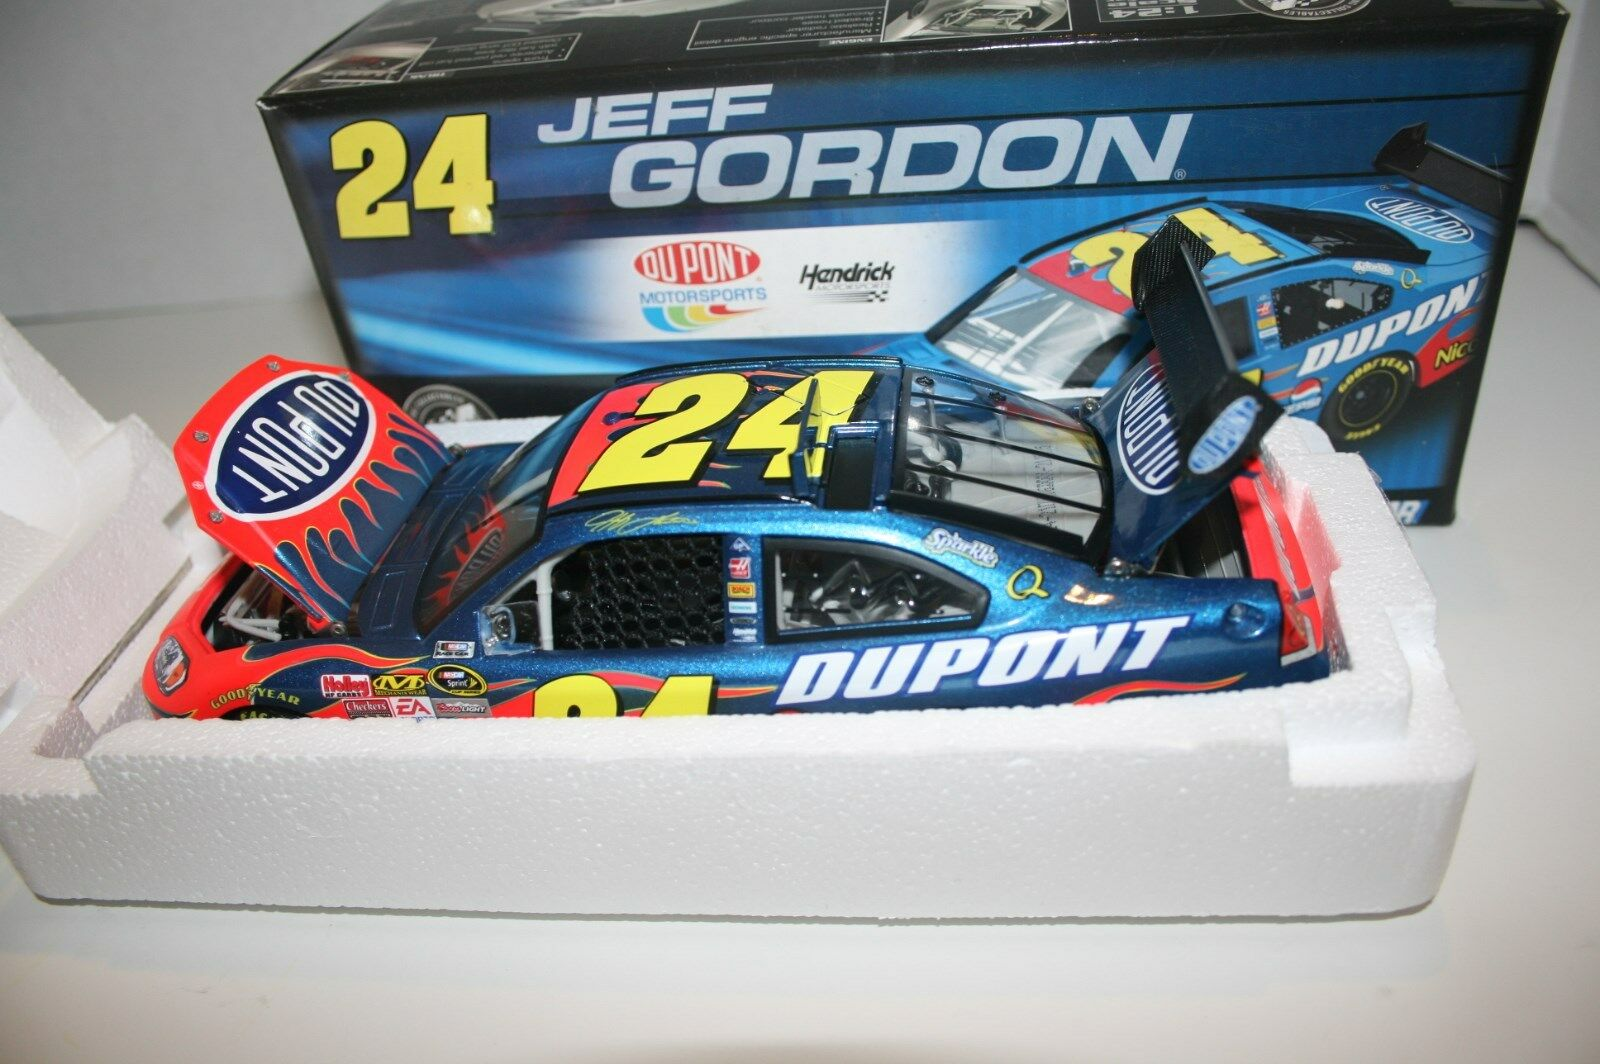 2008 Jeff Gordon  24 Dupont 1 24 Cot Version Action Diecast